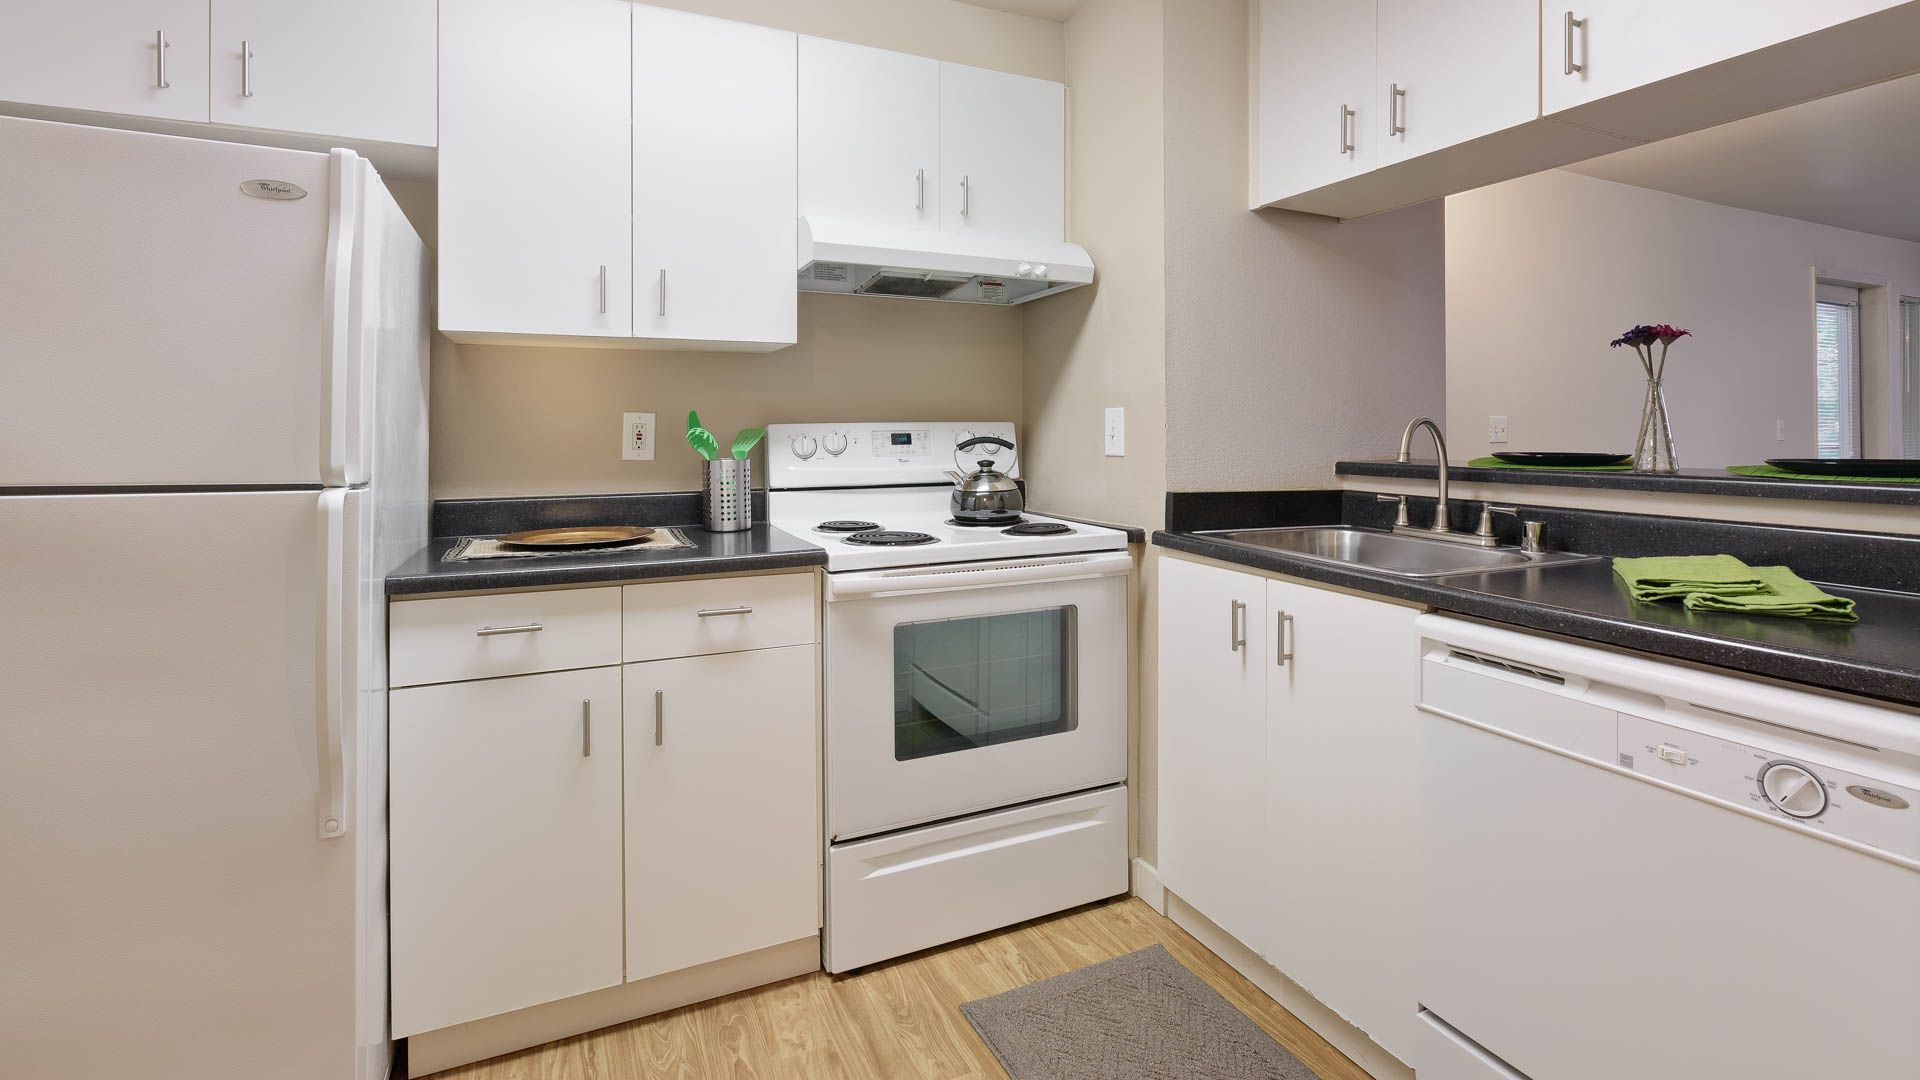 Seventh and James Apartments - Kitchen